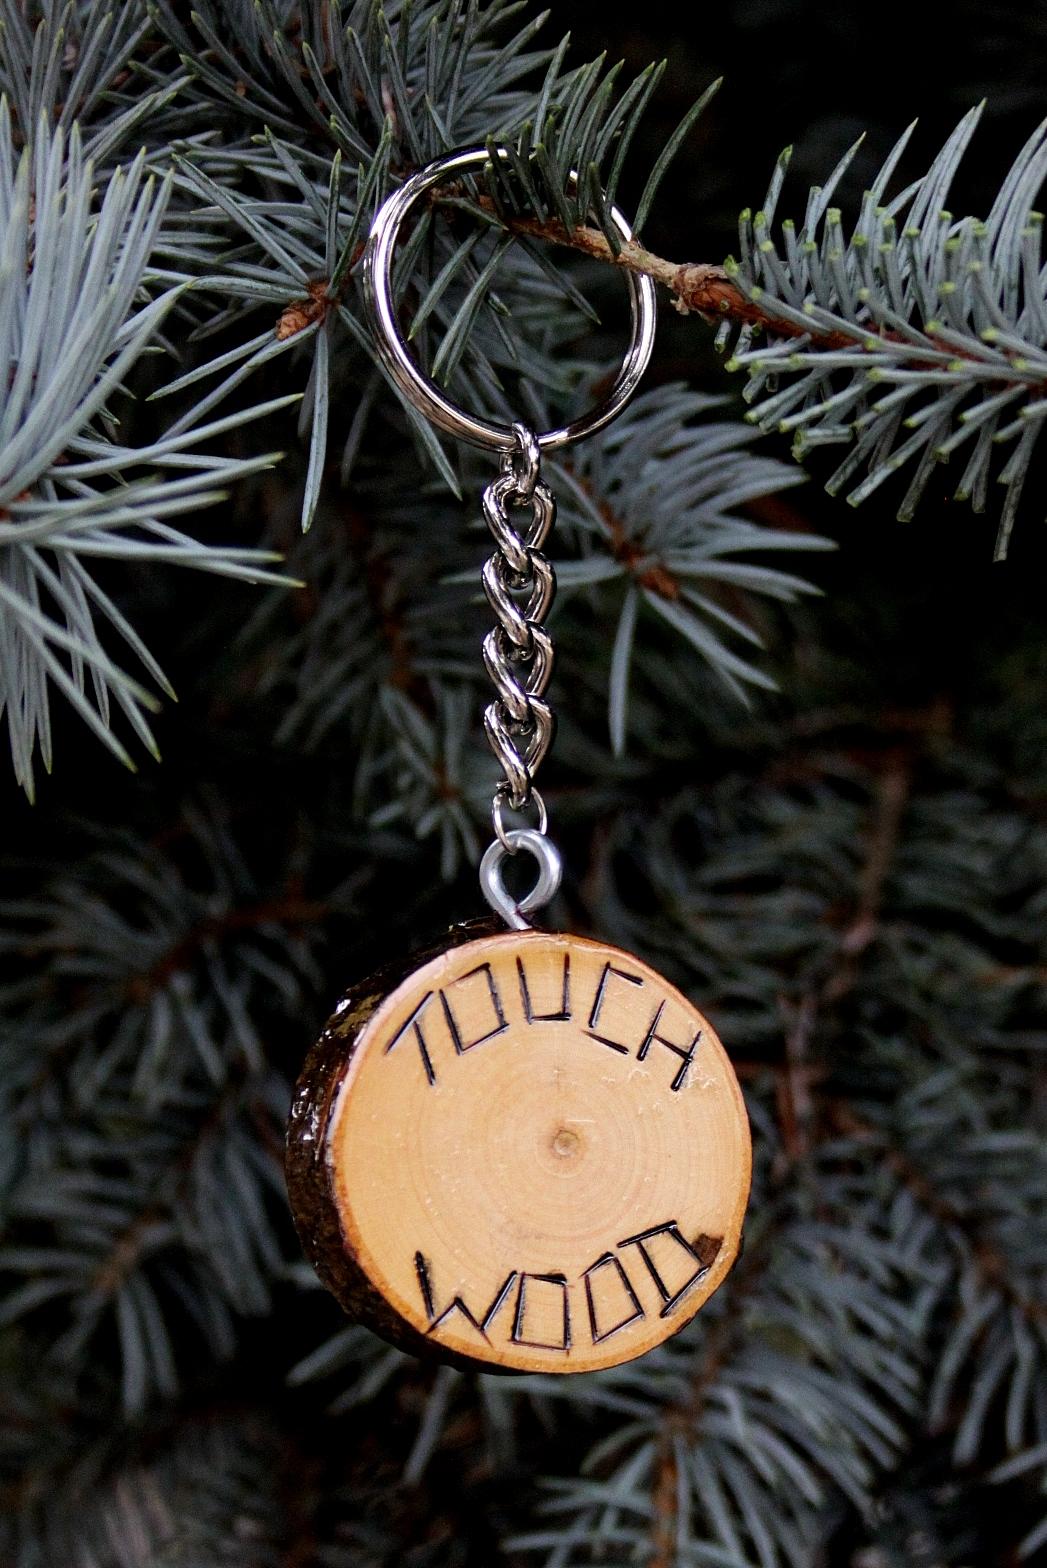 TouchWood-74 Key-Chains & Necklaces